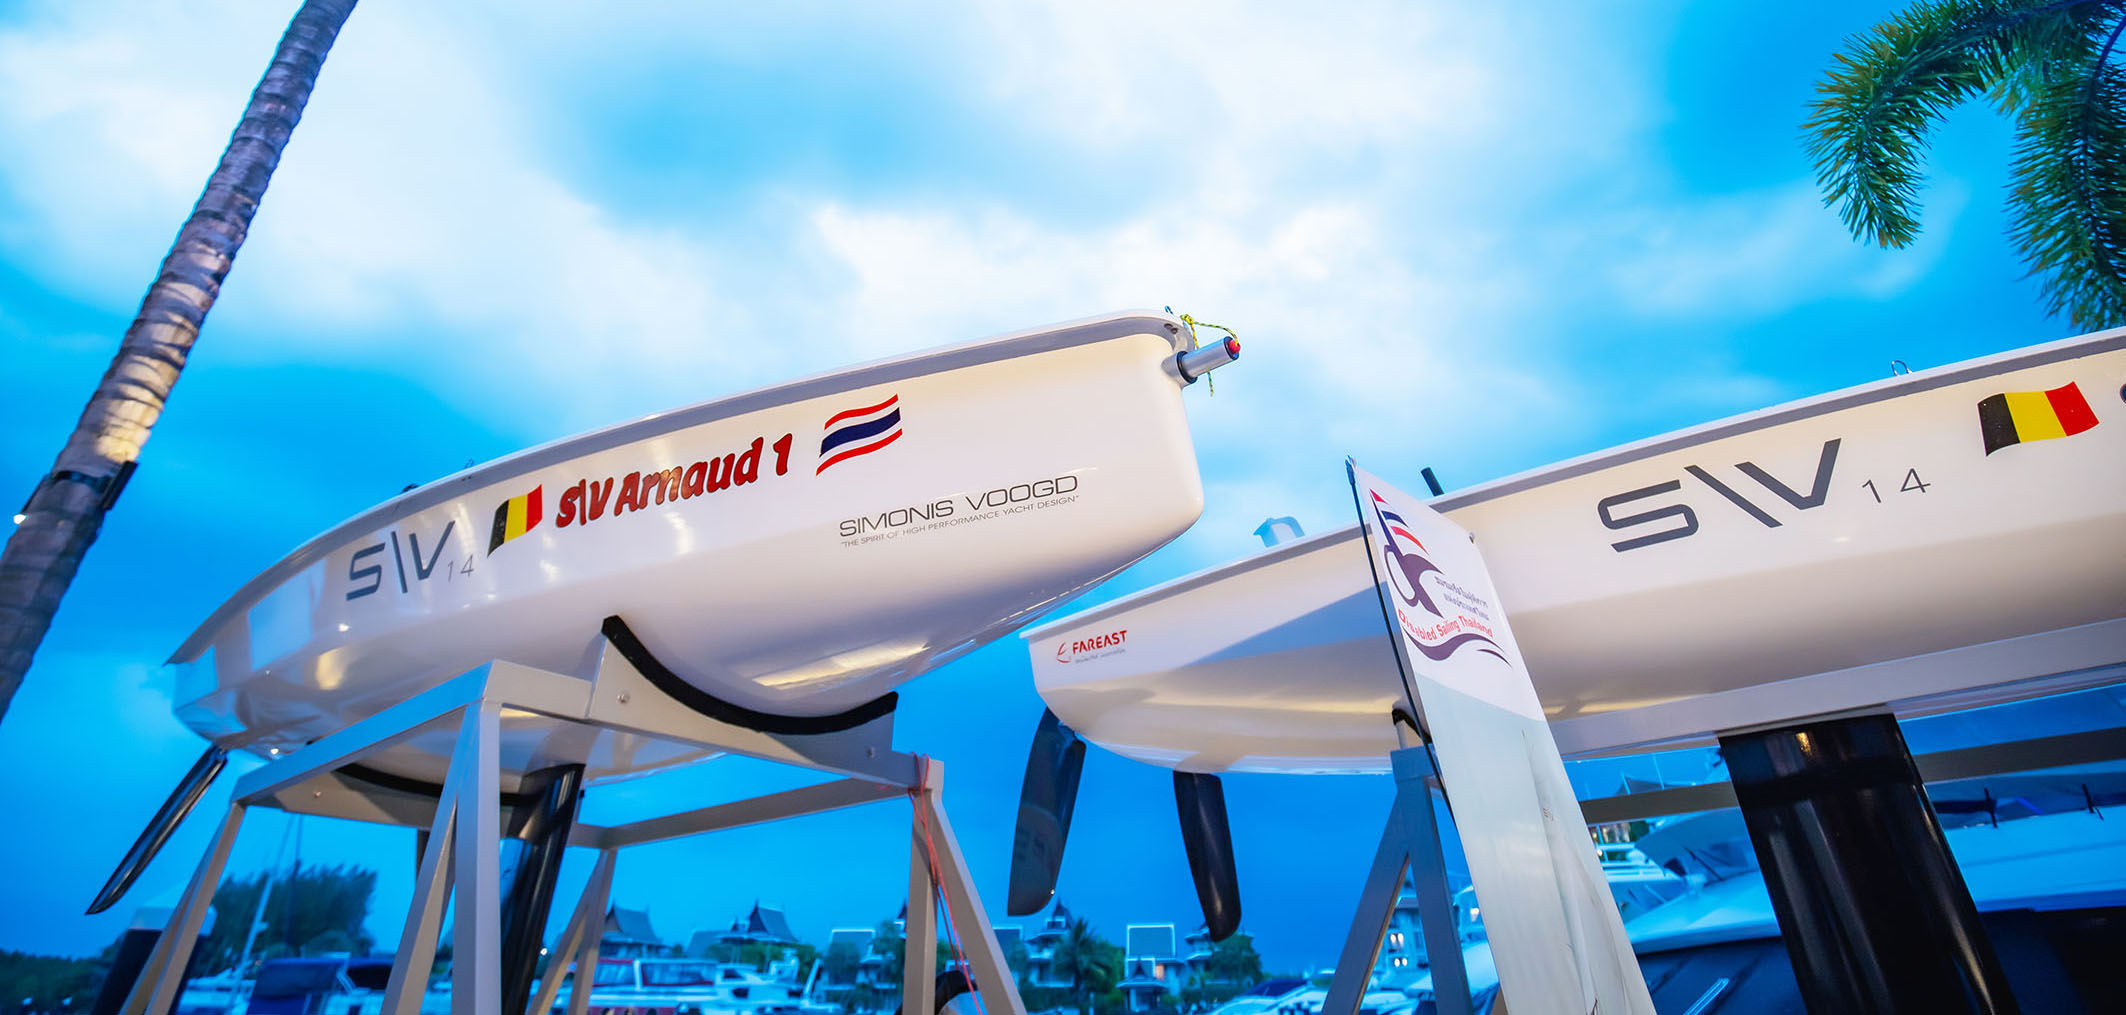 Two new SV 14 boats donated to Disabled Sailing Thailand in Phuket | News by Thaiger